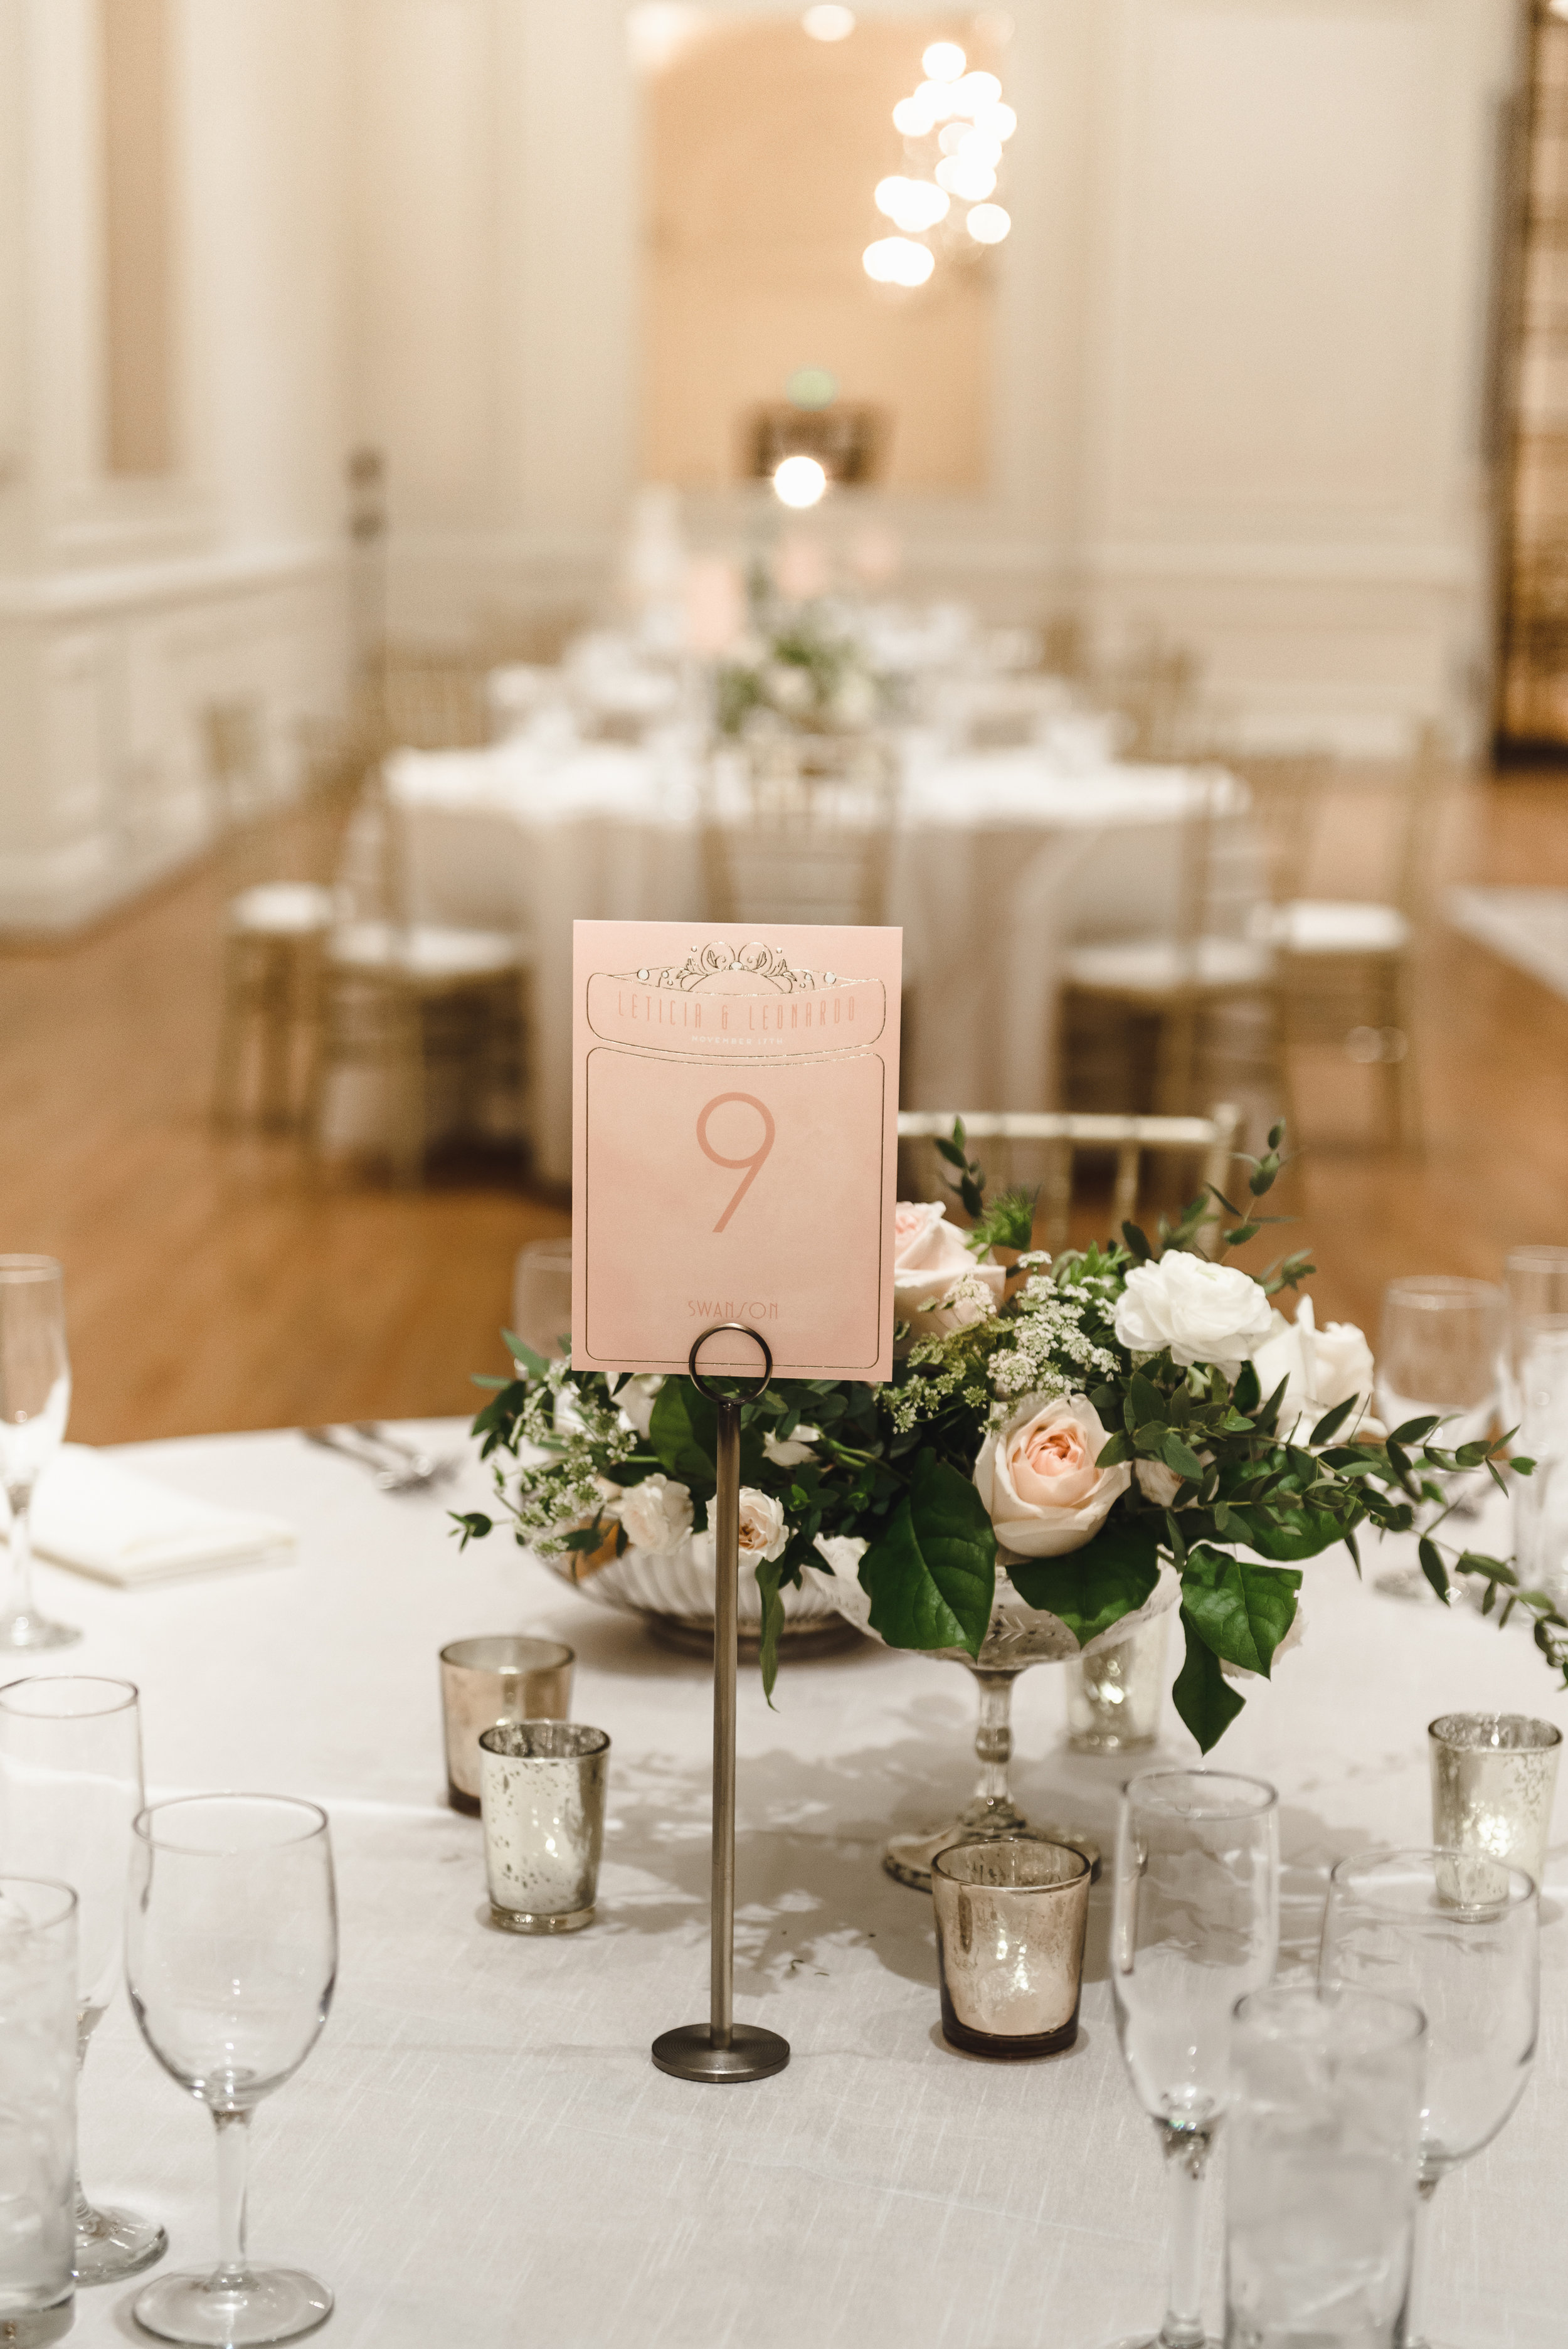 blush and cream florals at ballroom wedding #lrqcfloral #dtlawedding .jpg